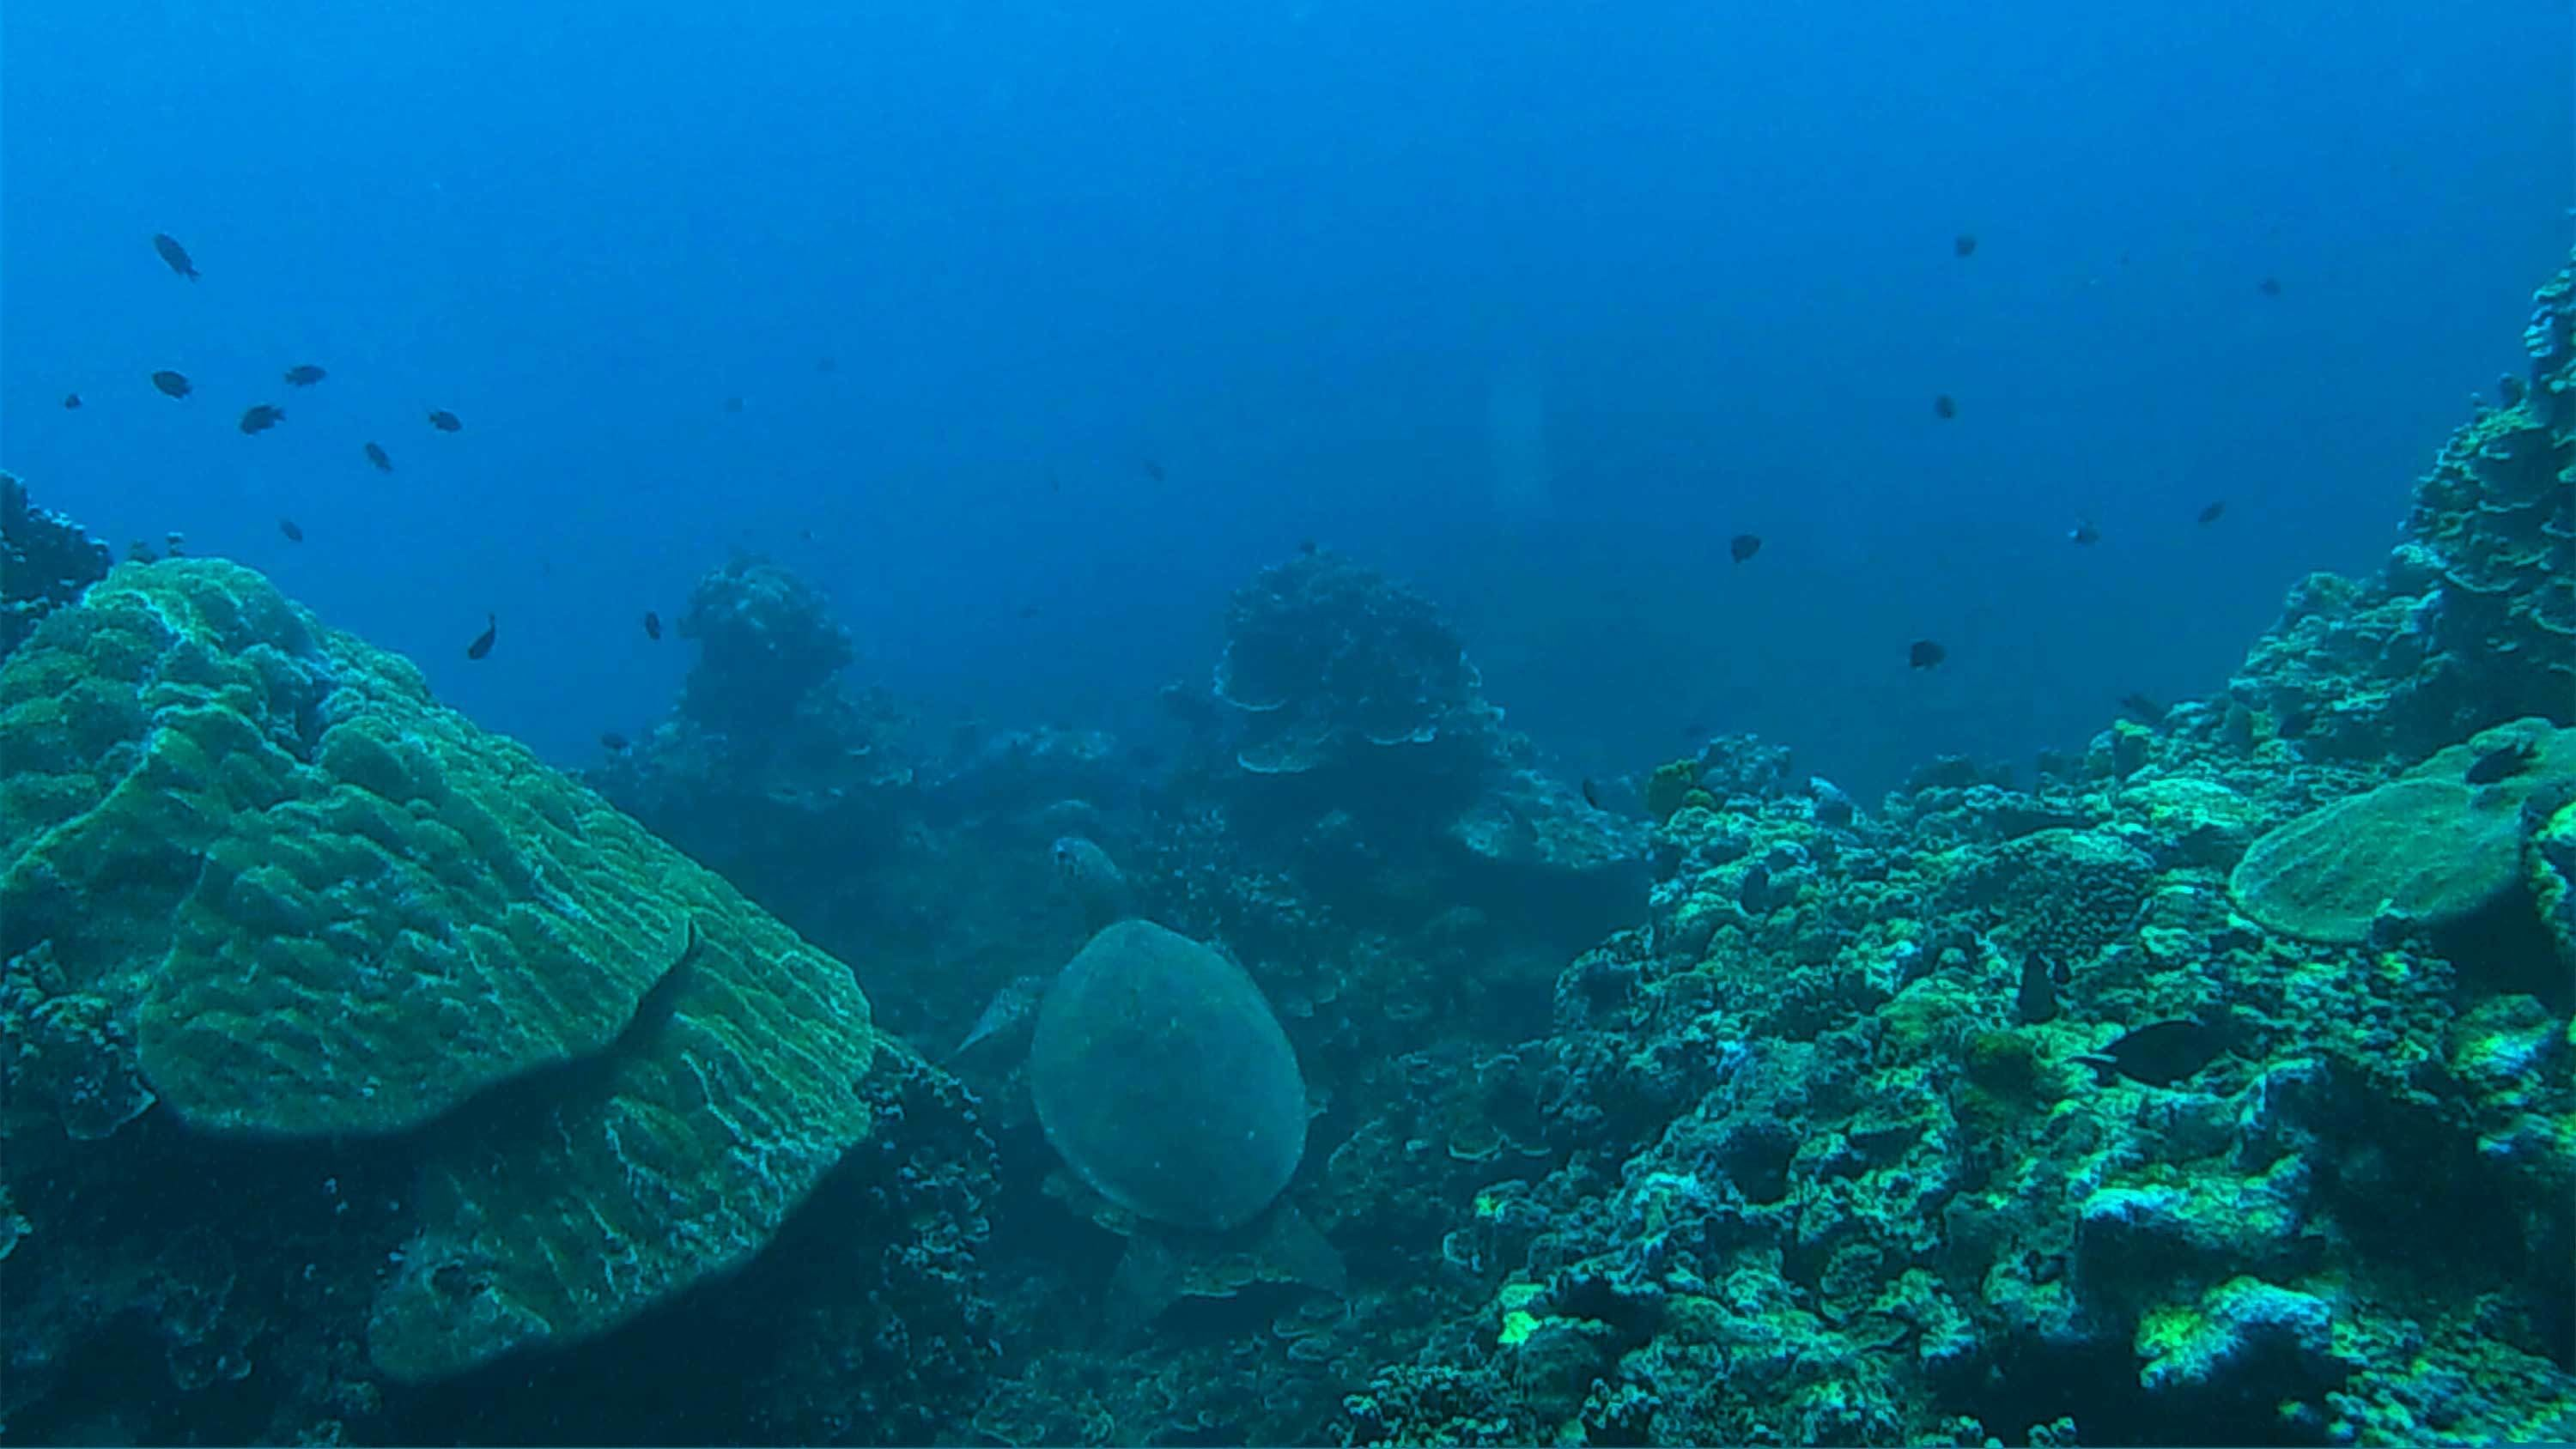 View under the sea at Forgotten Bay in Samoa